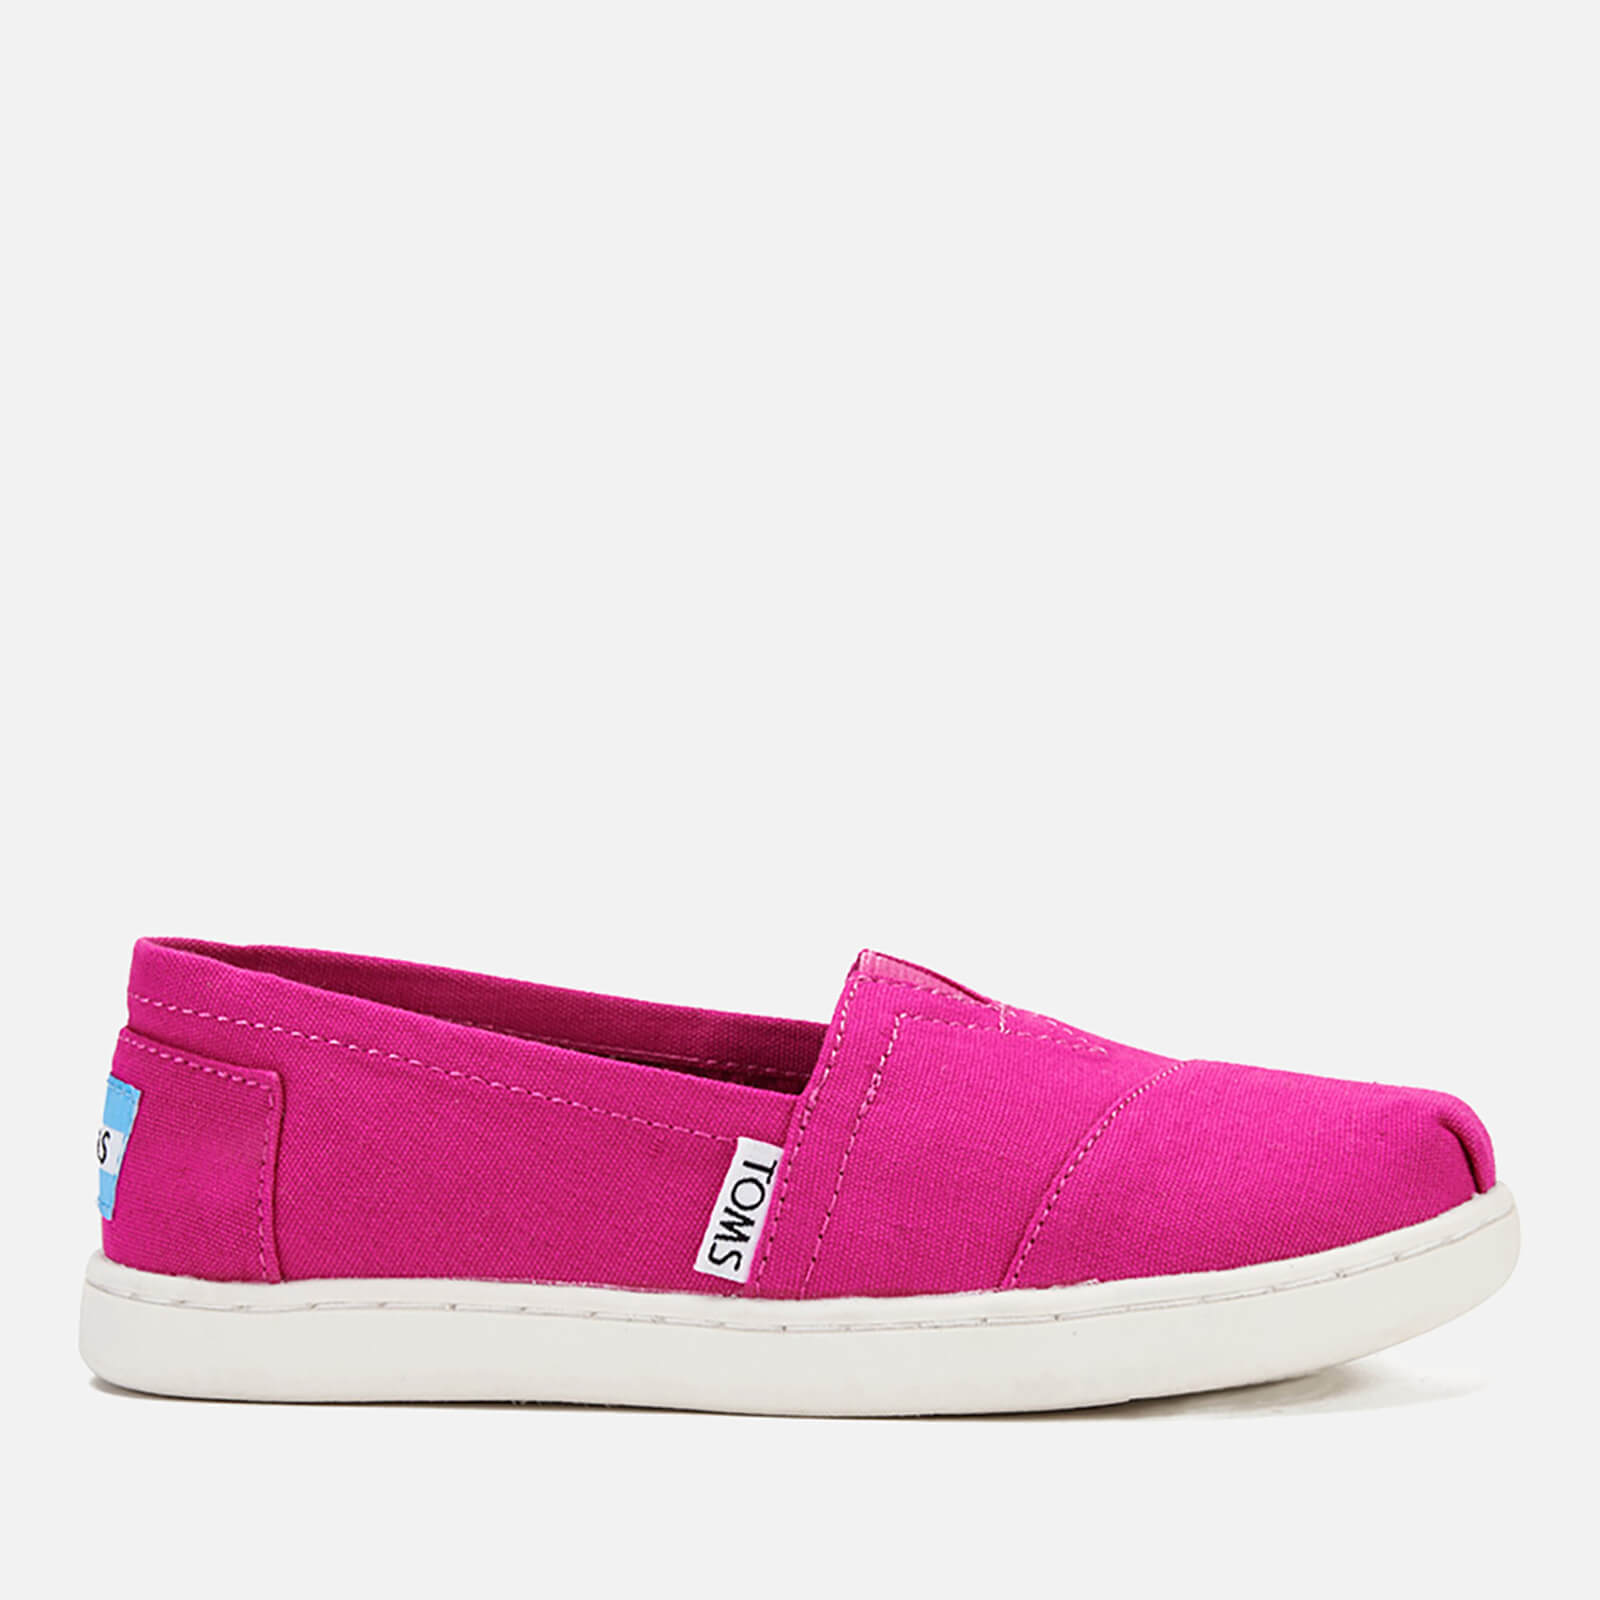 7a8a7301a90 TOMS Kids' Seasonal Classics Slip-On Pumps - Fuchsia | FREE UK Delivery |  Allsole